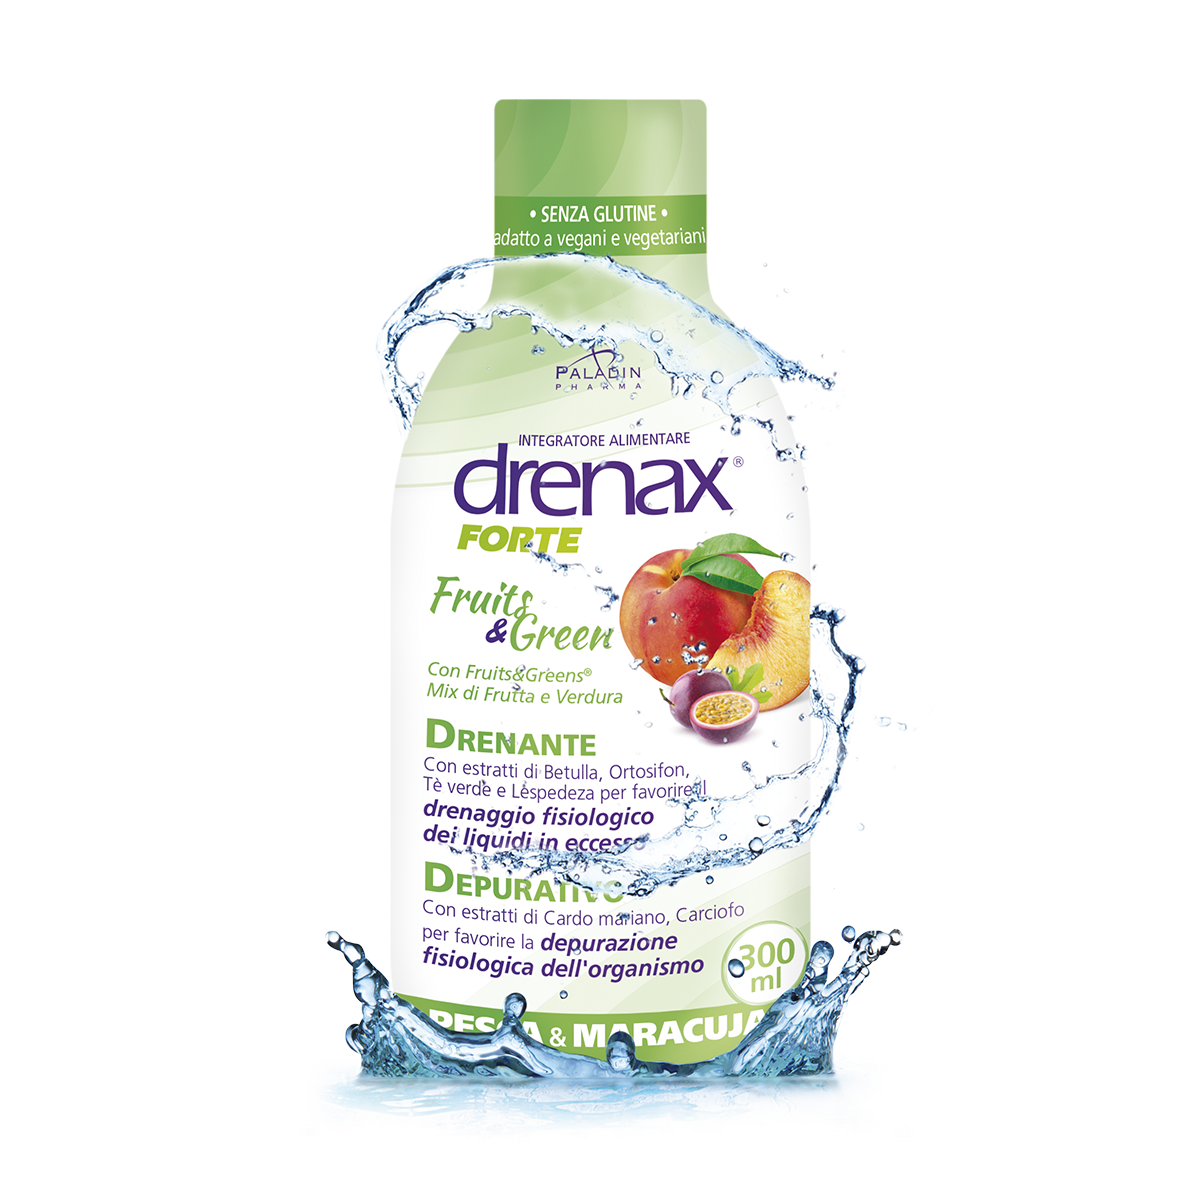 Drenax Forte Pocket Fruits & Green